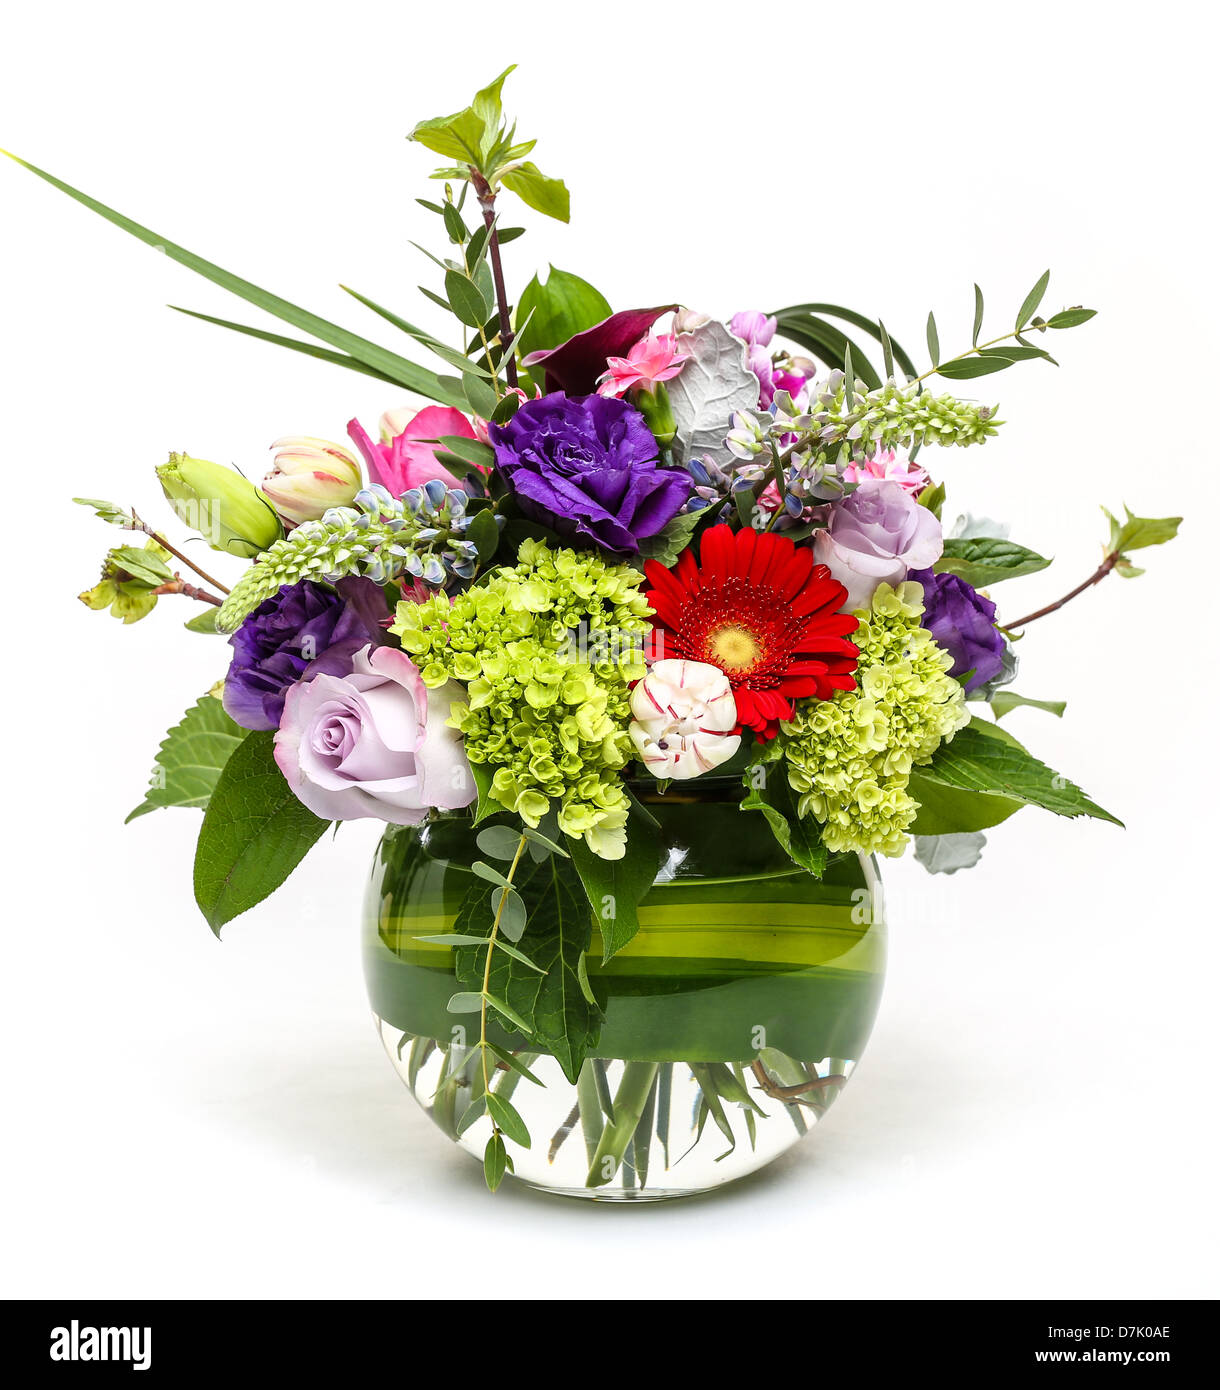 A Beautiful Spring Flower Arrangement In A Clear Vase Stock Photo